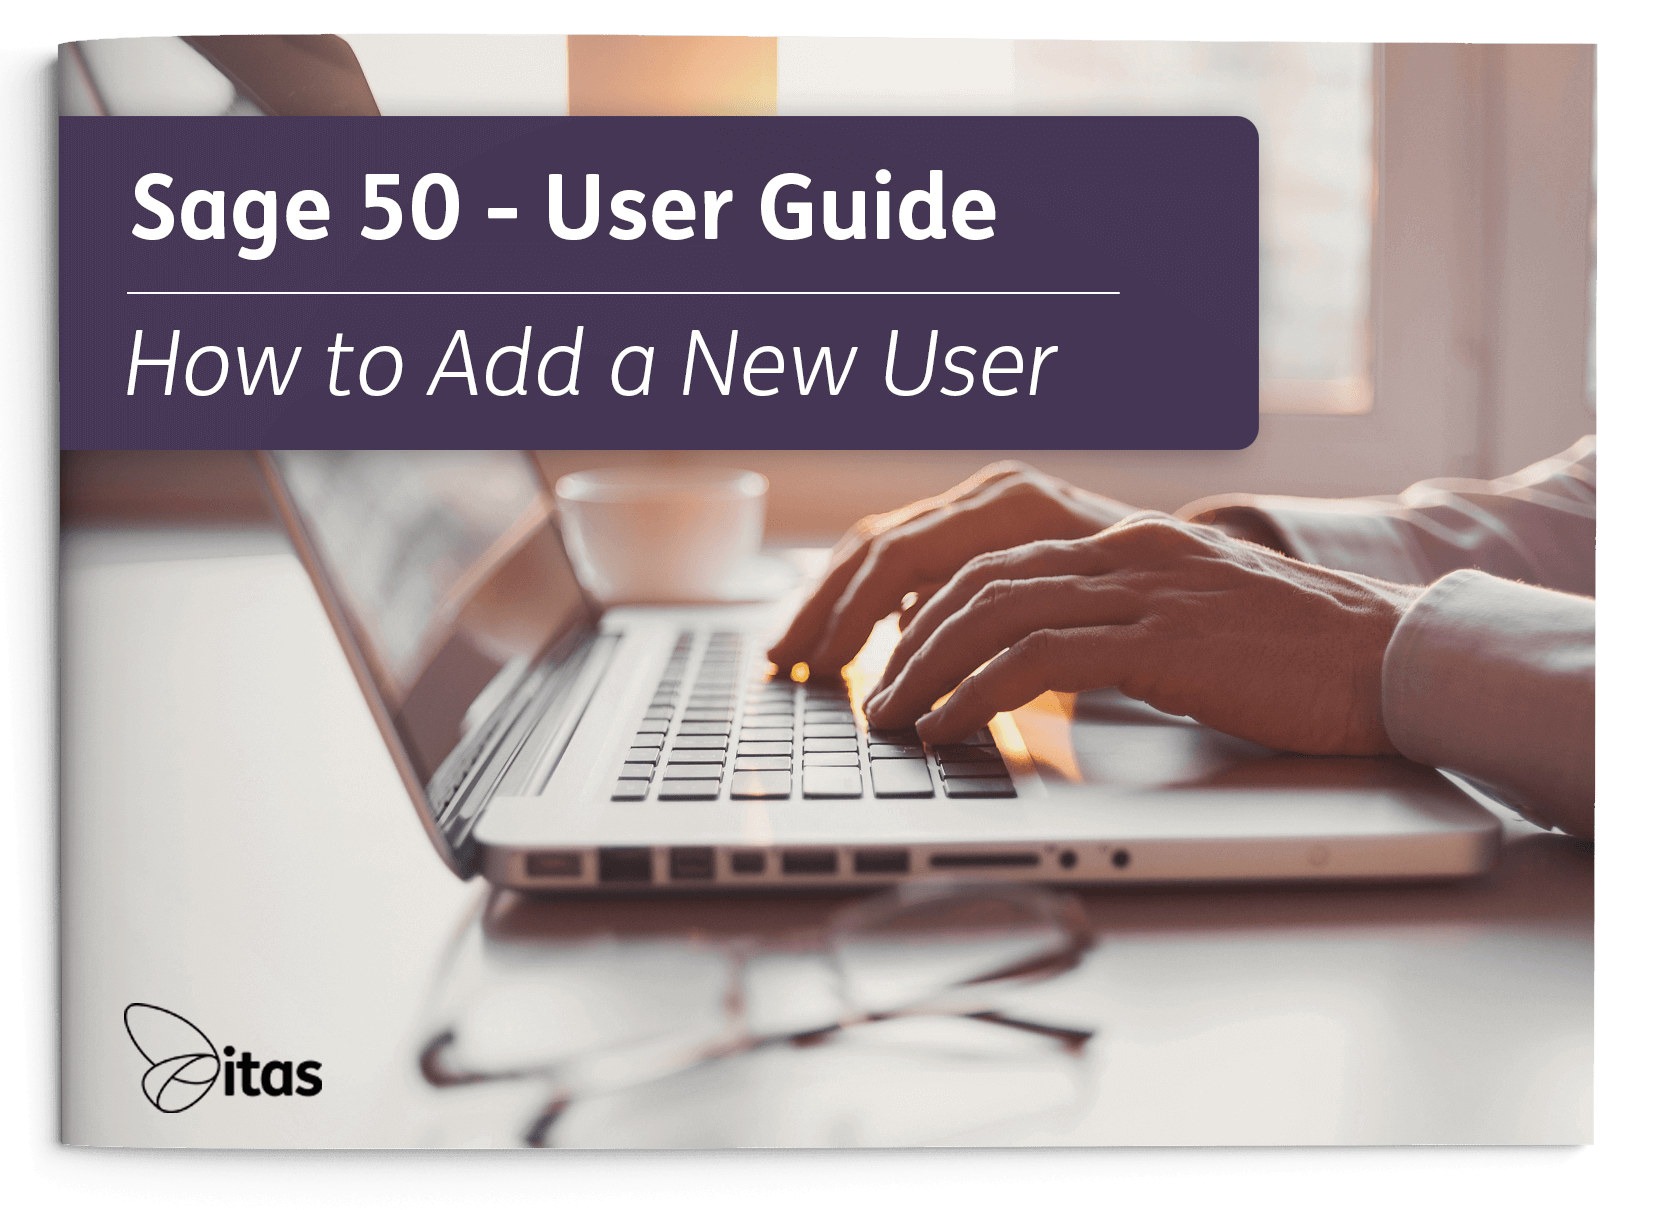 How to add a new user in Sage 50 help guide